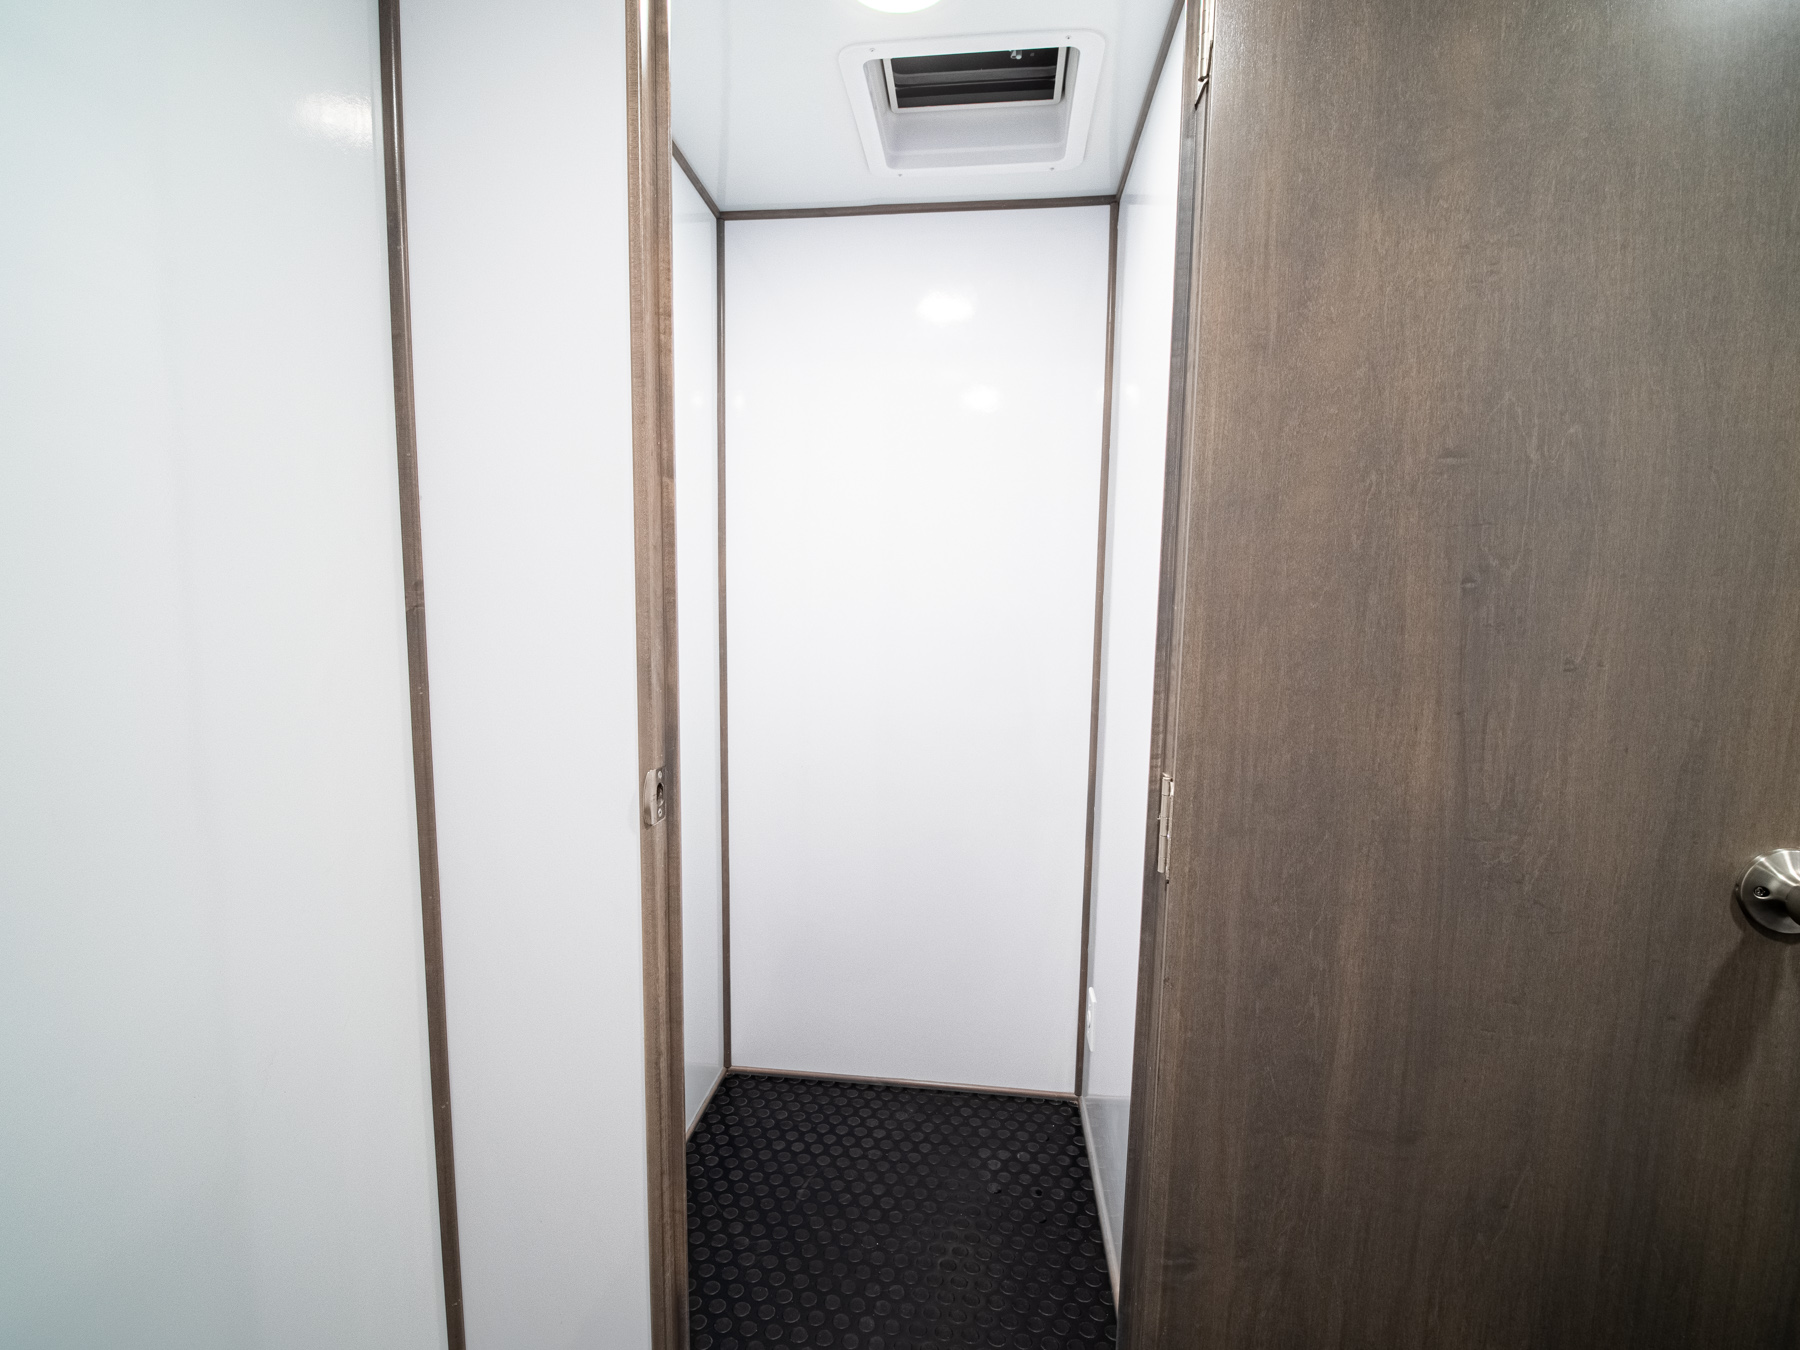 Mobile Office 24 RE interior hallway view